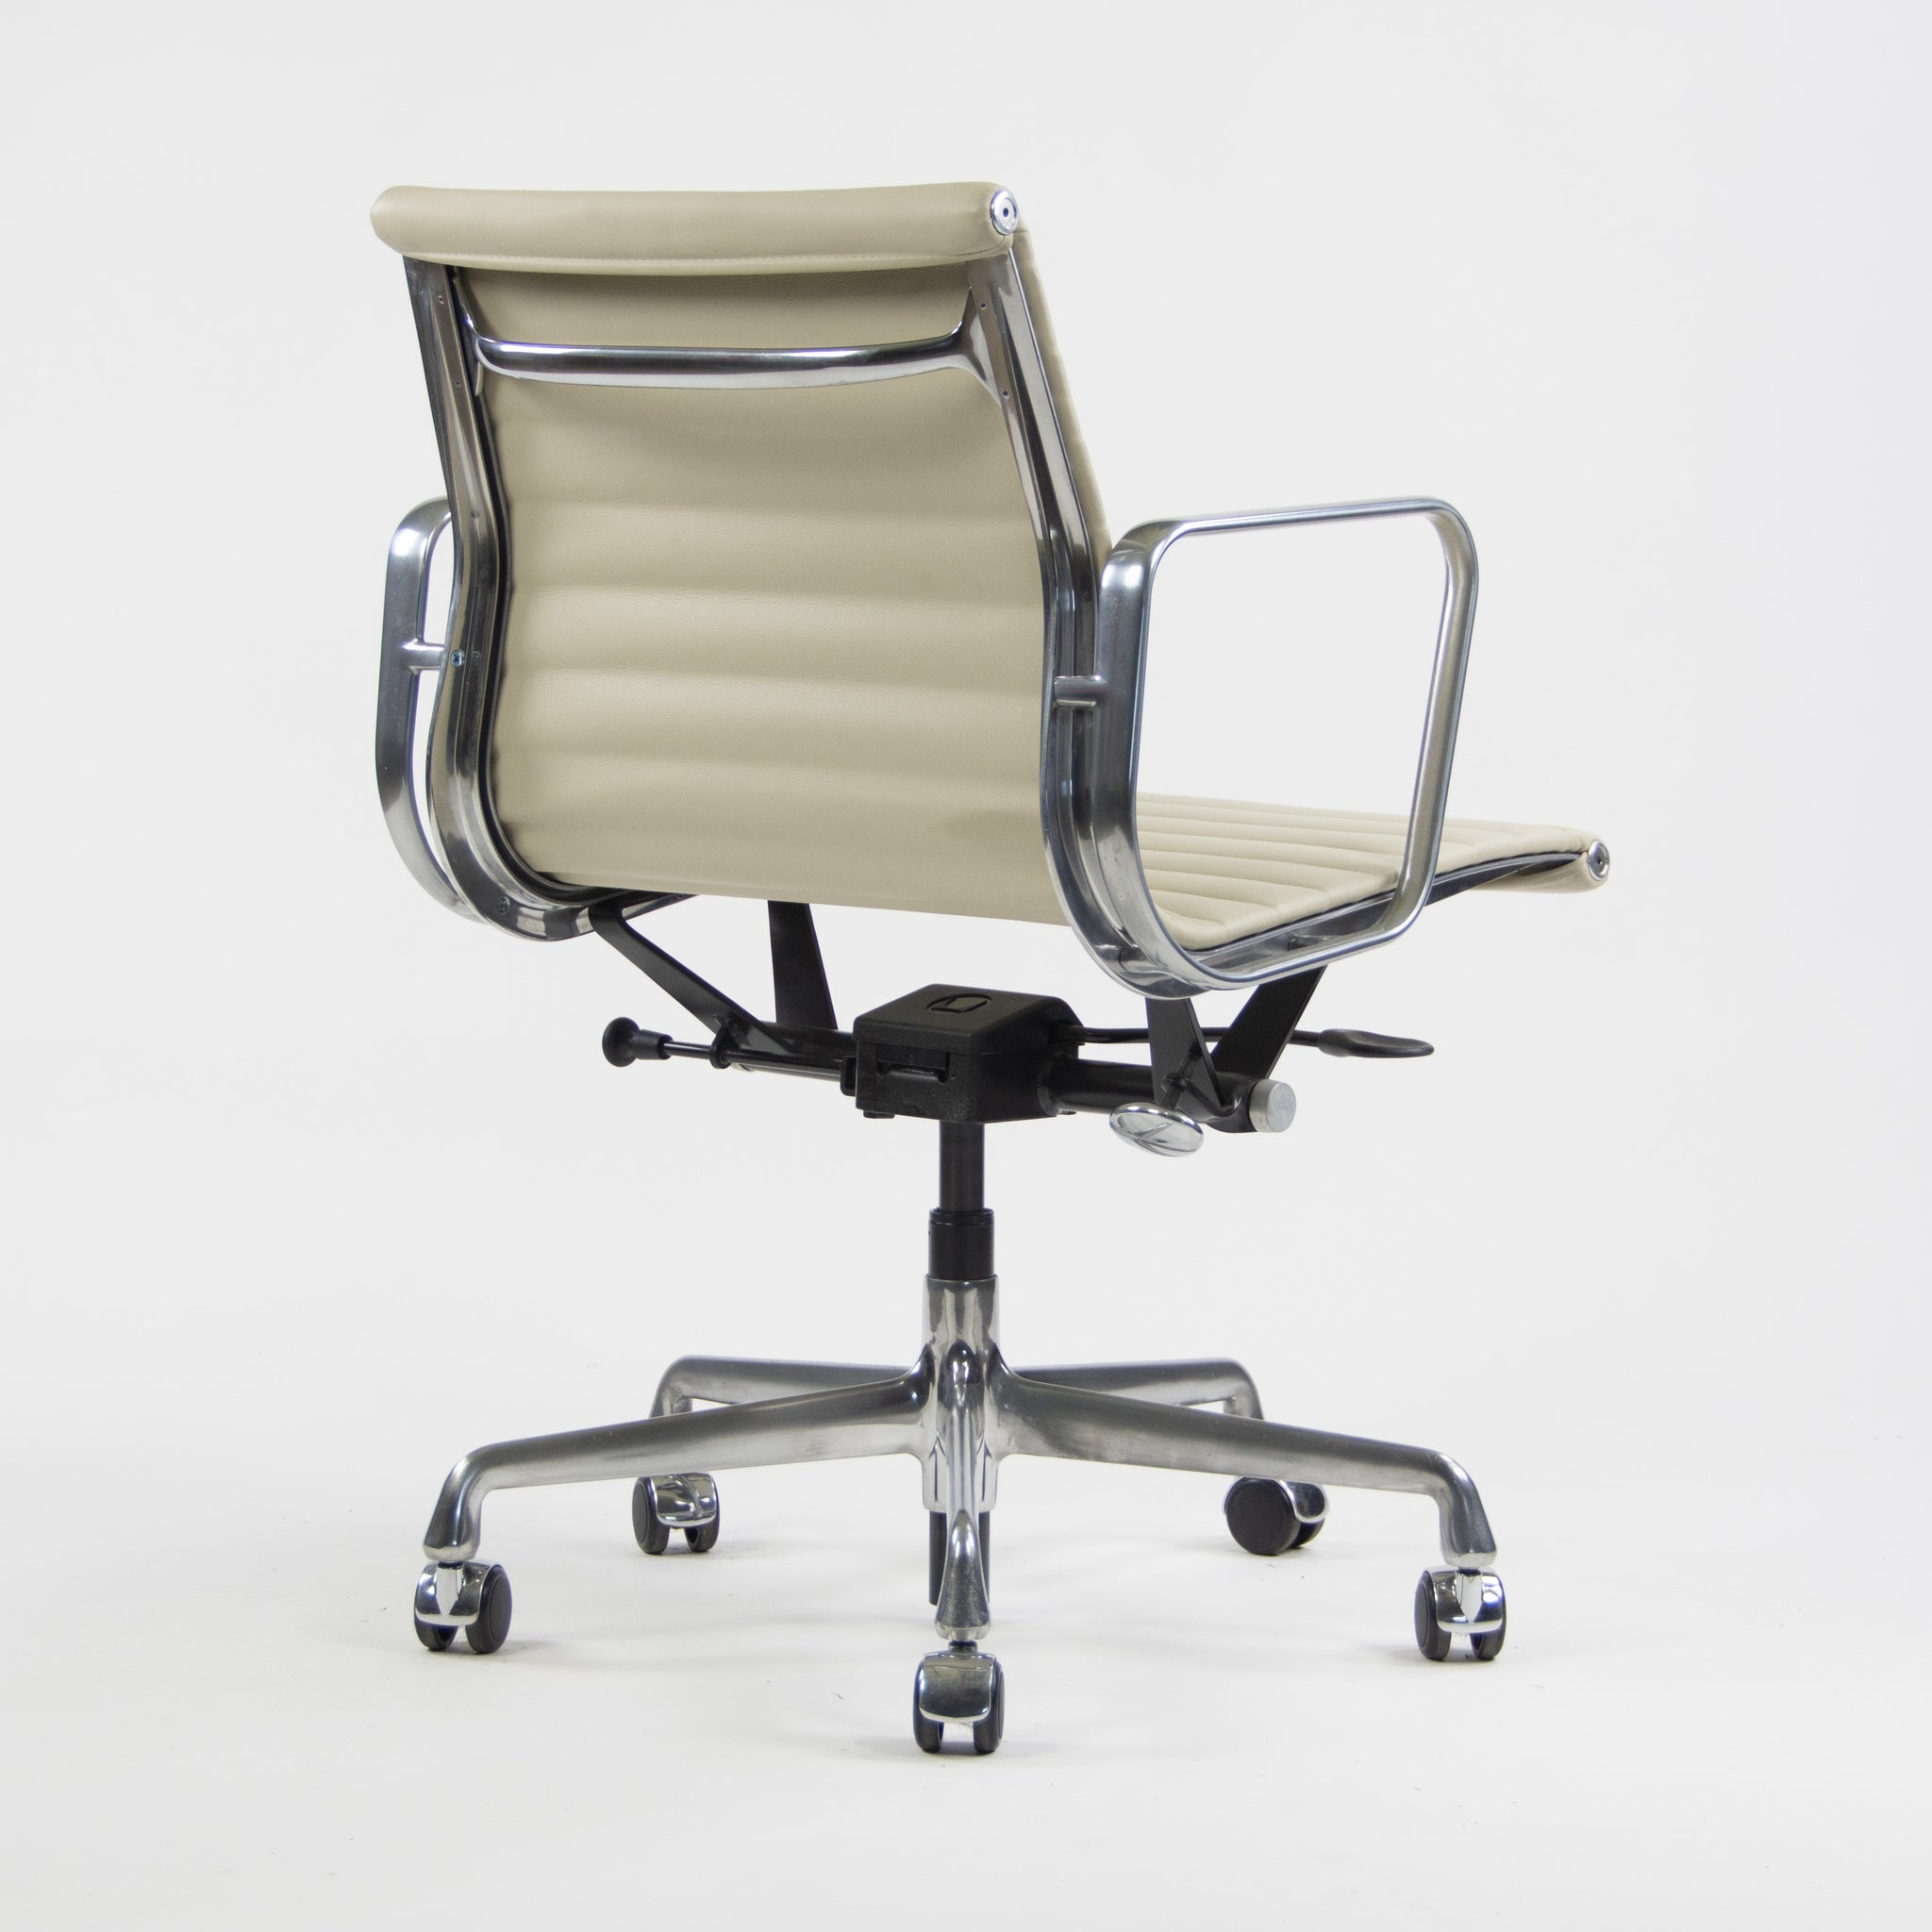 SOLD Herman Miller Eames New Old Stock Low Aluminum Group Management Desk Chair Tan